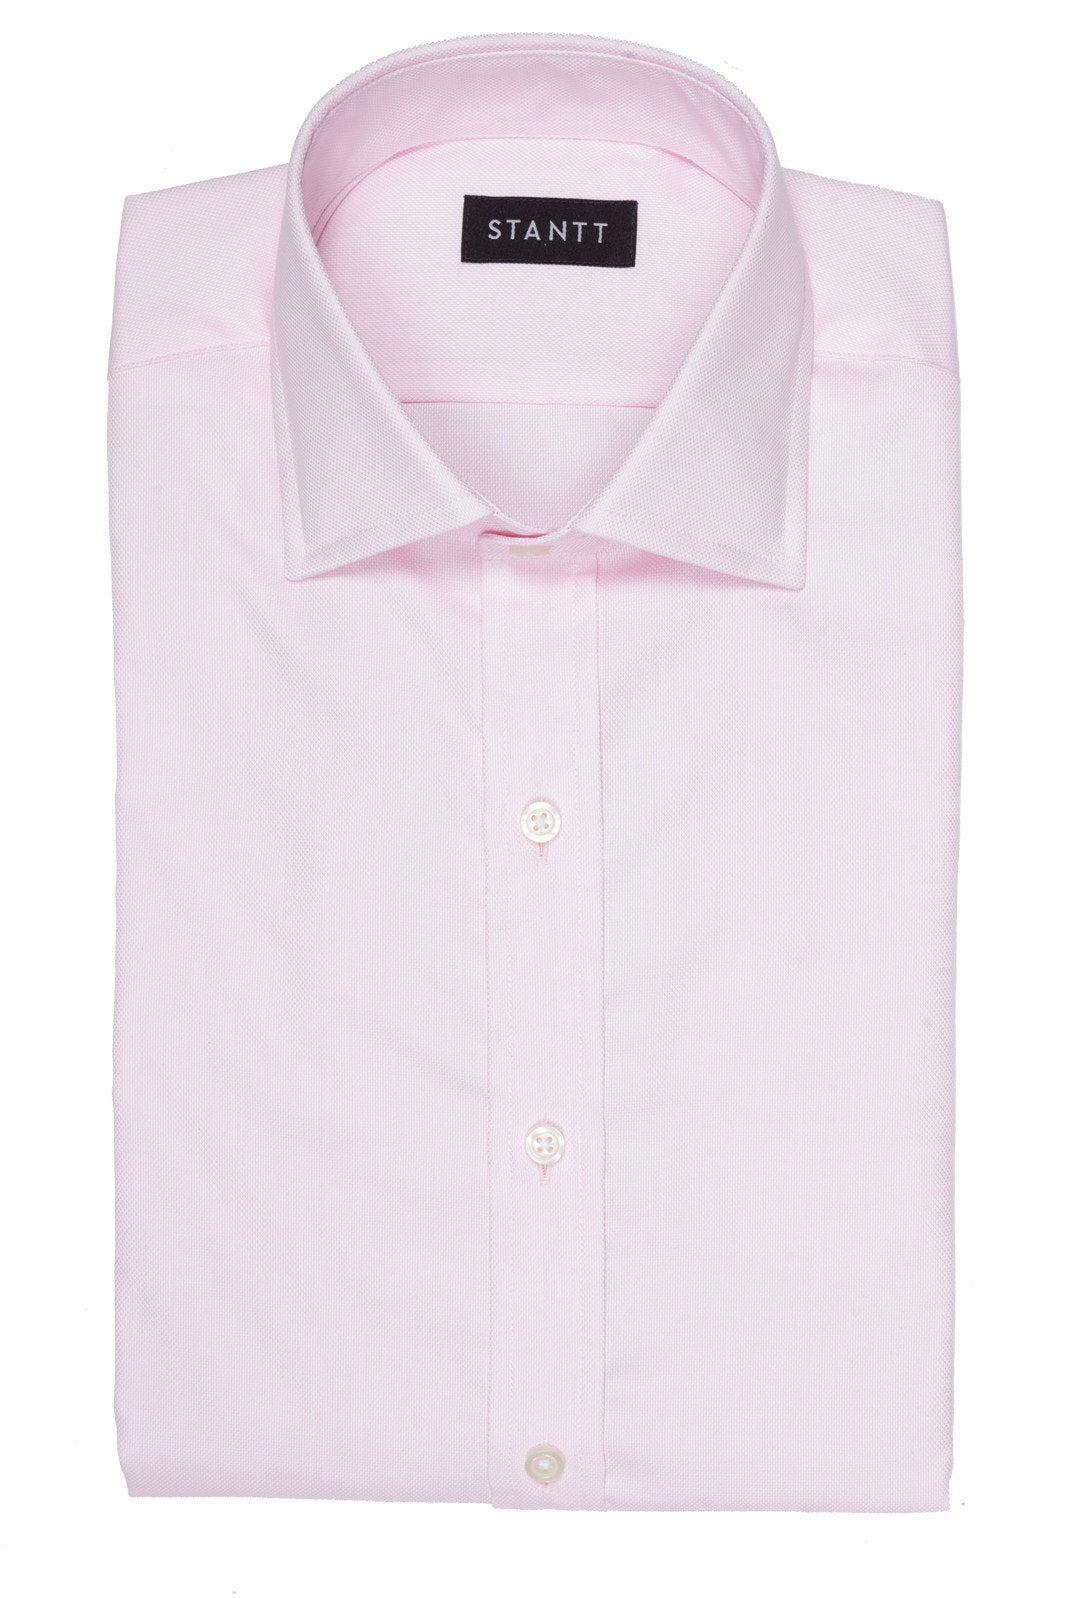 Pink Royal Oxford: Modified-Spread Collar, French Cuff